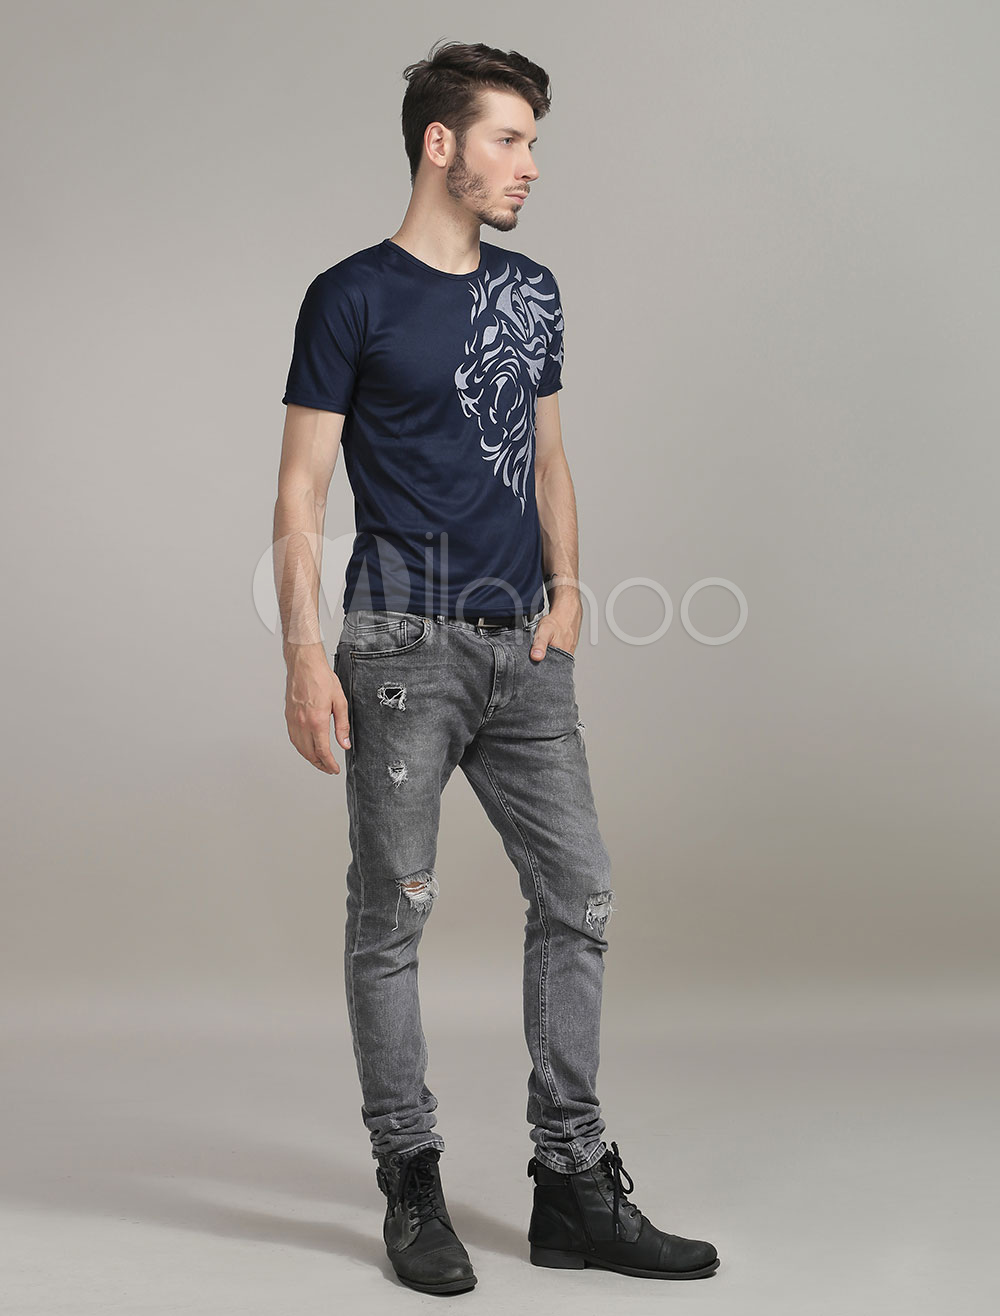 Men's Slim Fit T Shirt With Short Sleeves